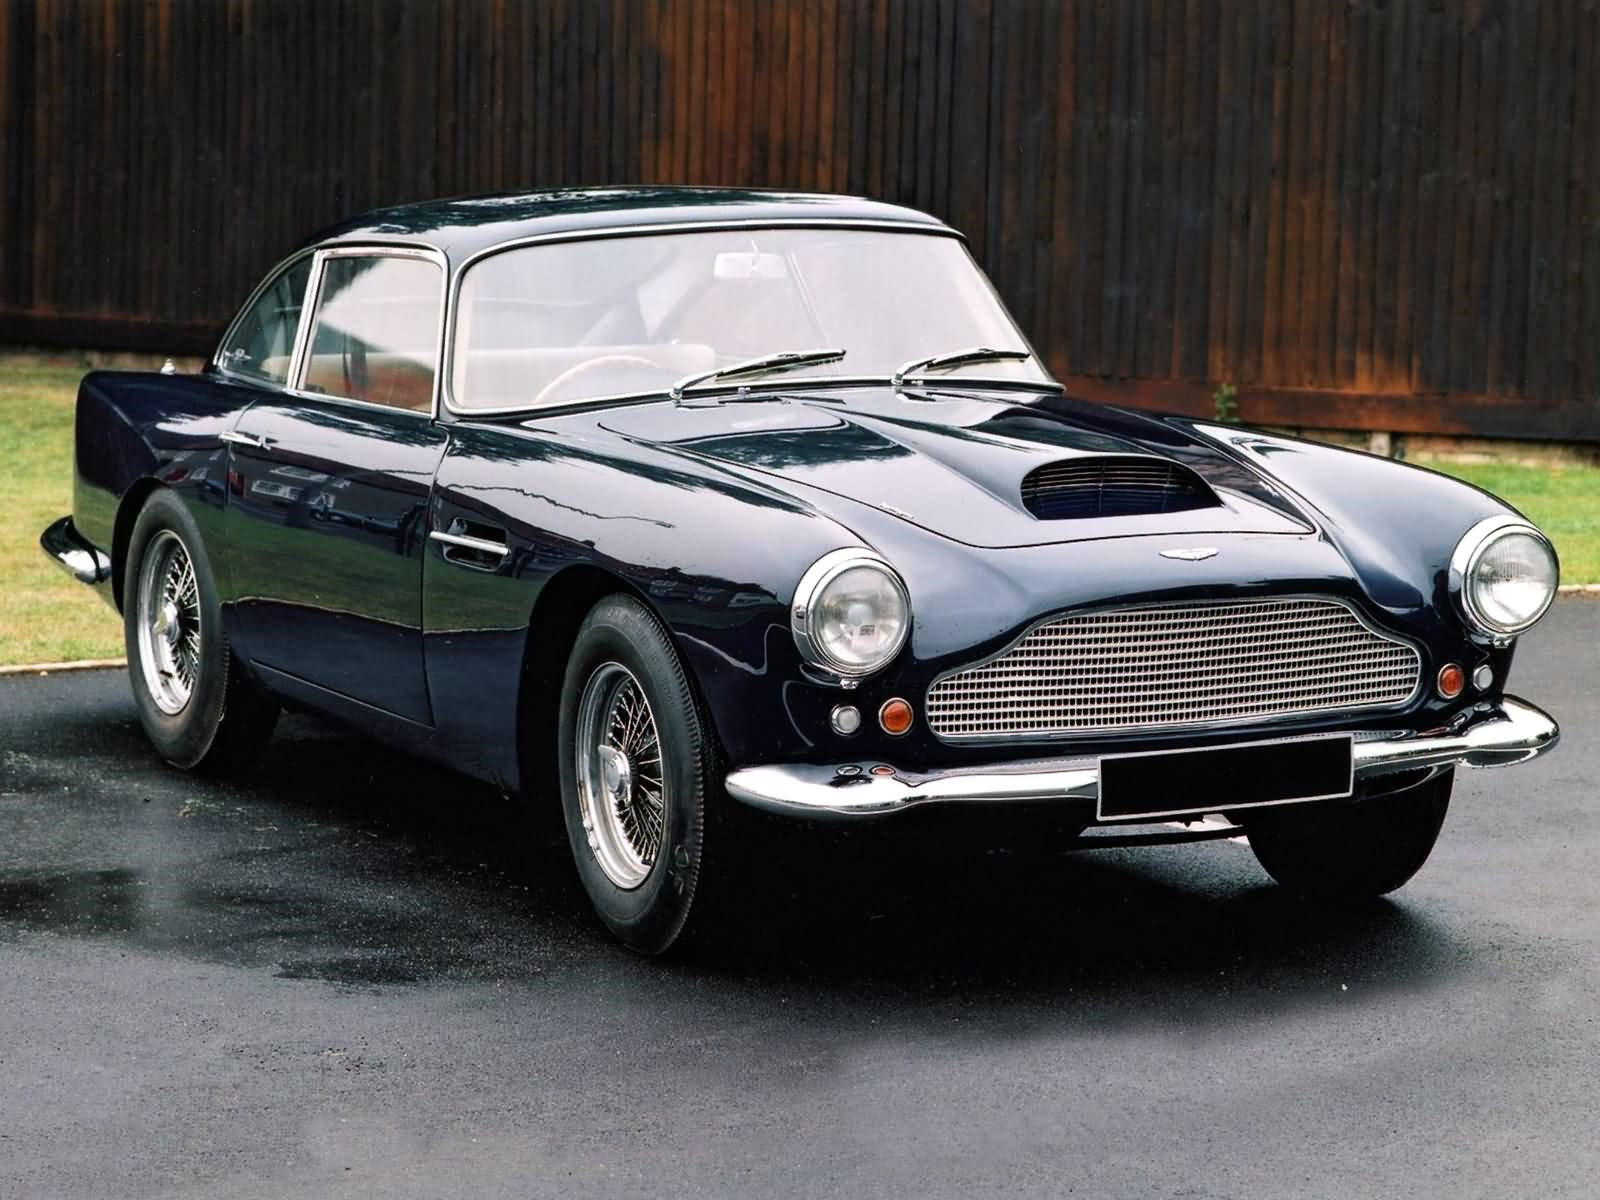 Car: Aston Martin DB4